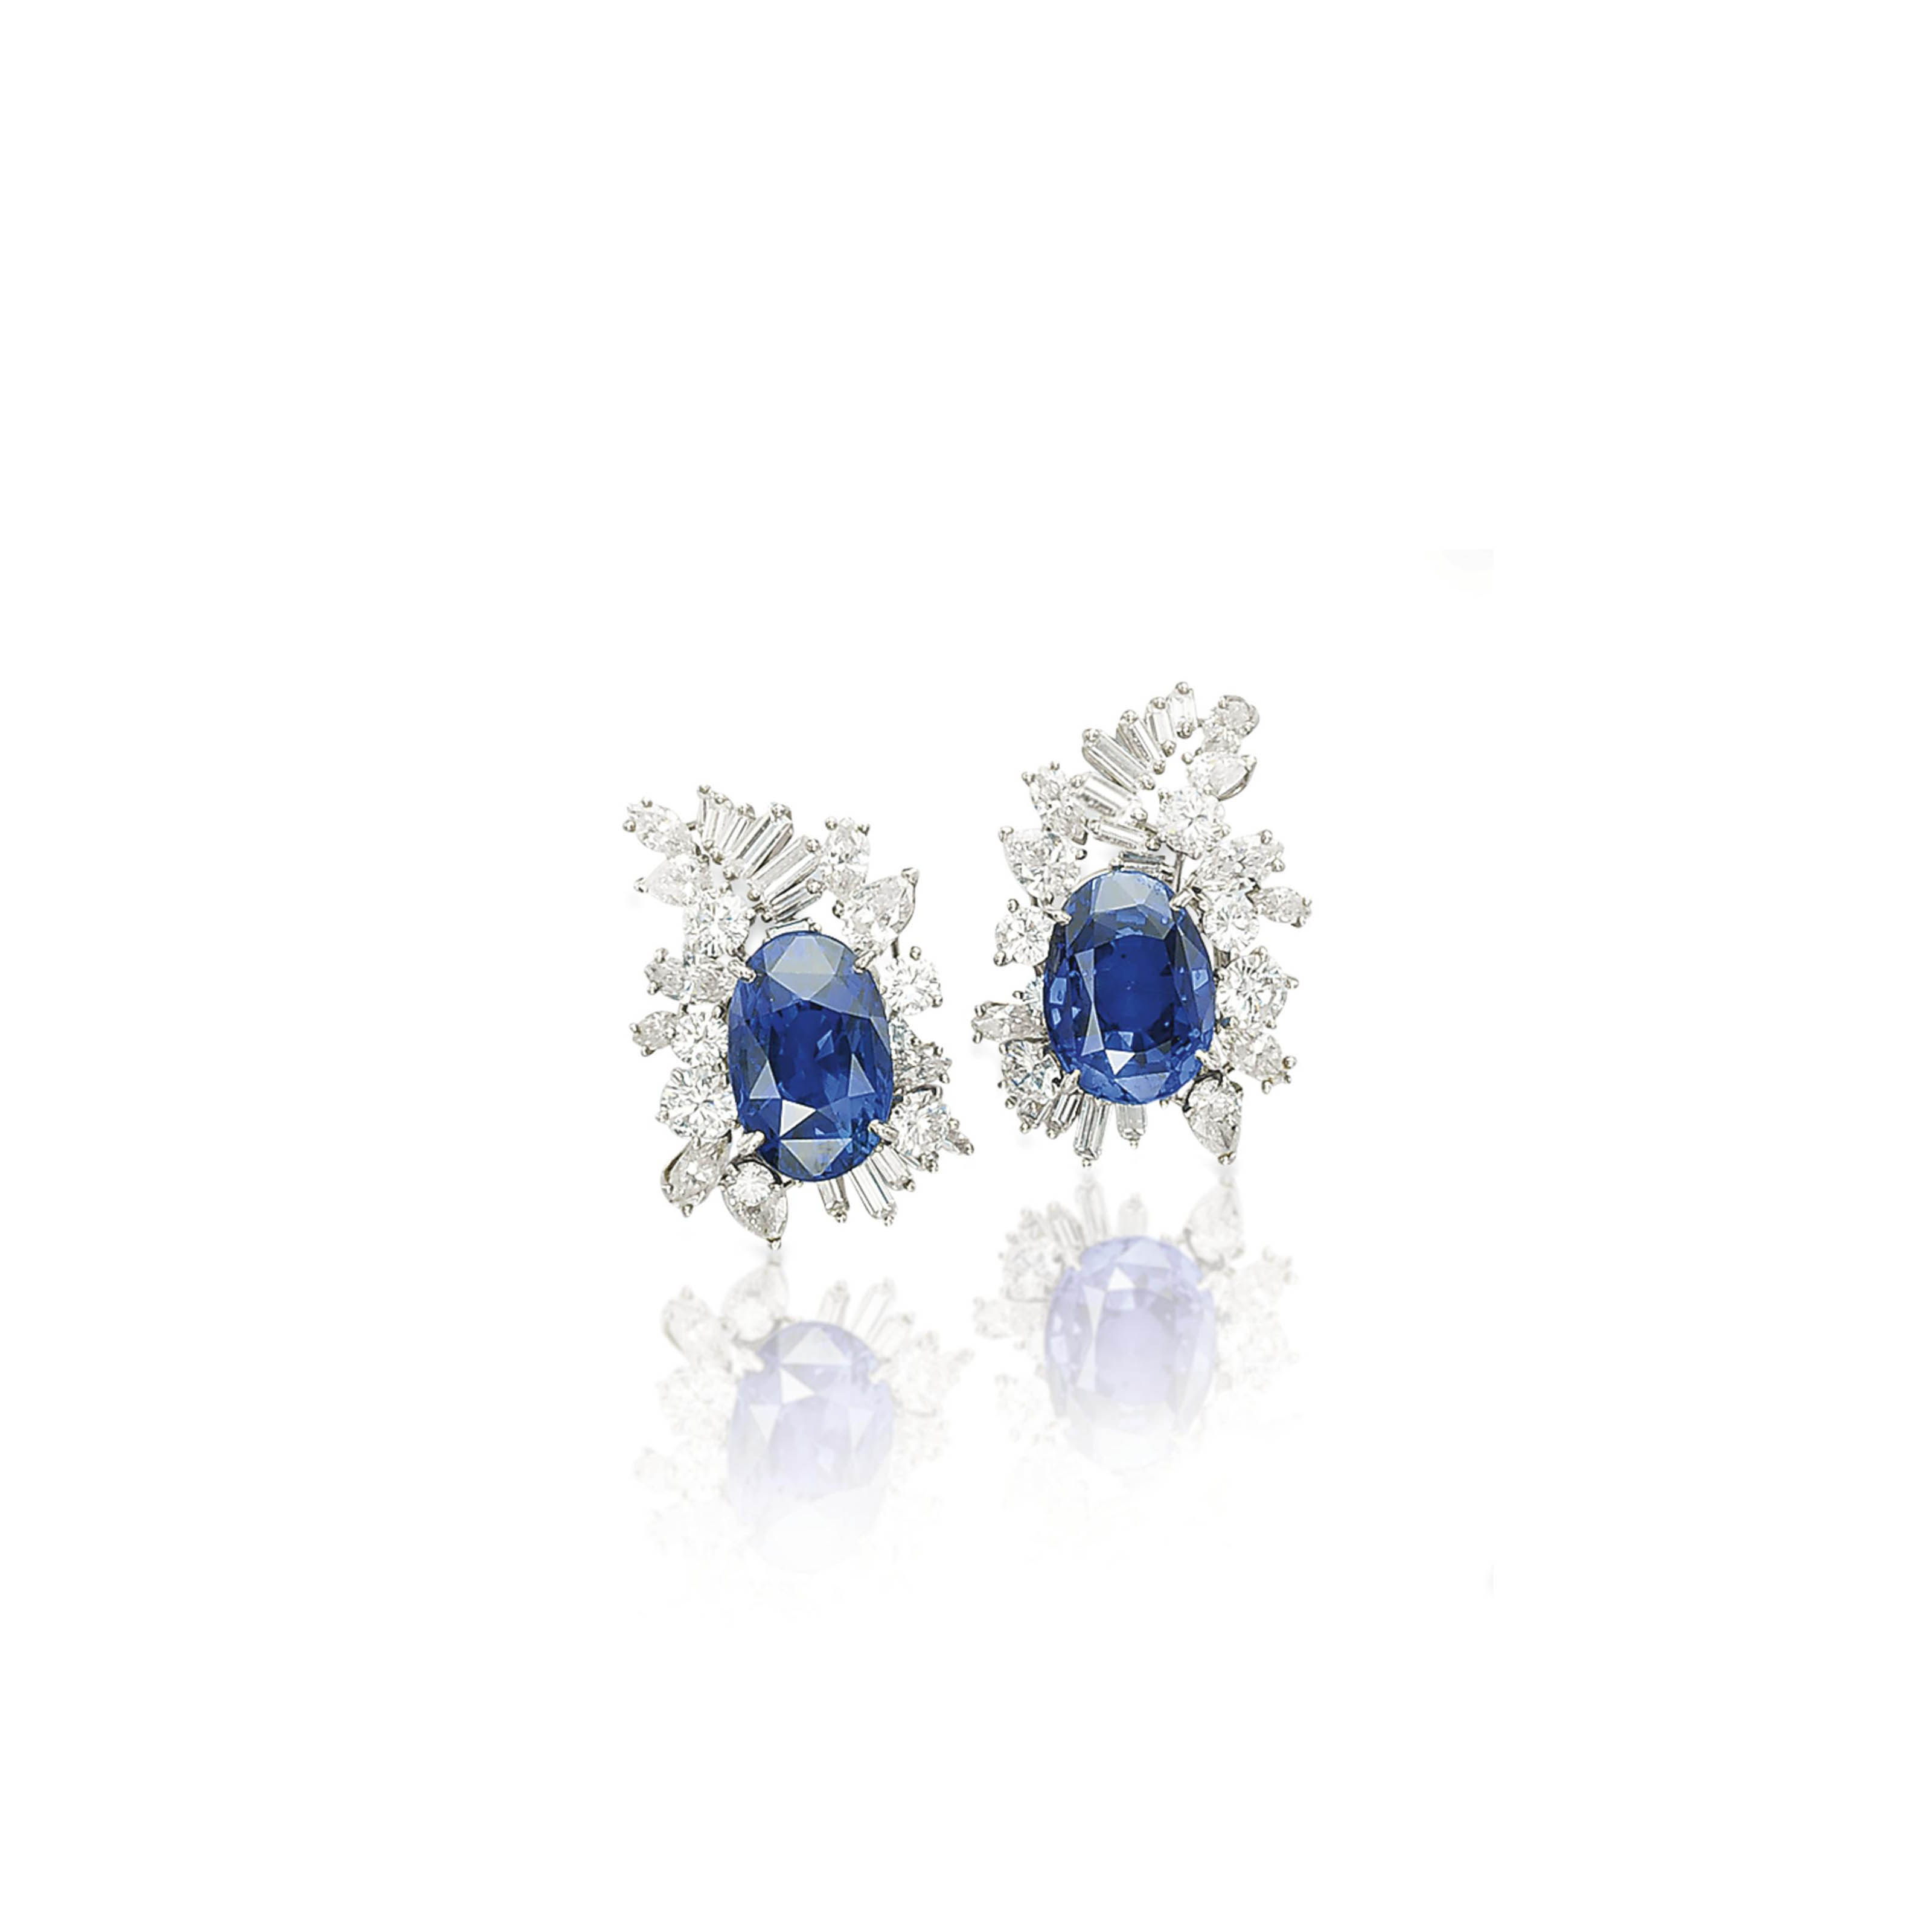 A PAIR OF SAPPHIRE AND DIAMOND EAR CLIPS, BY MEISTER